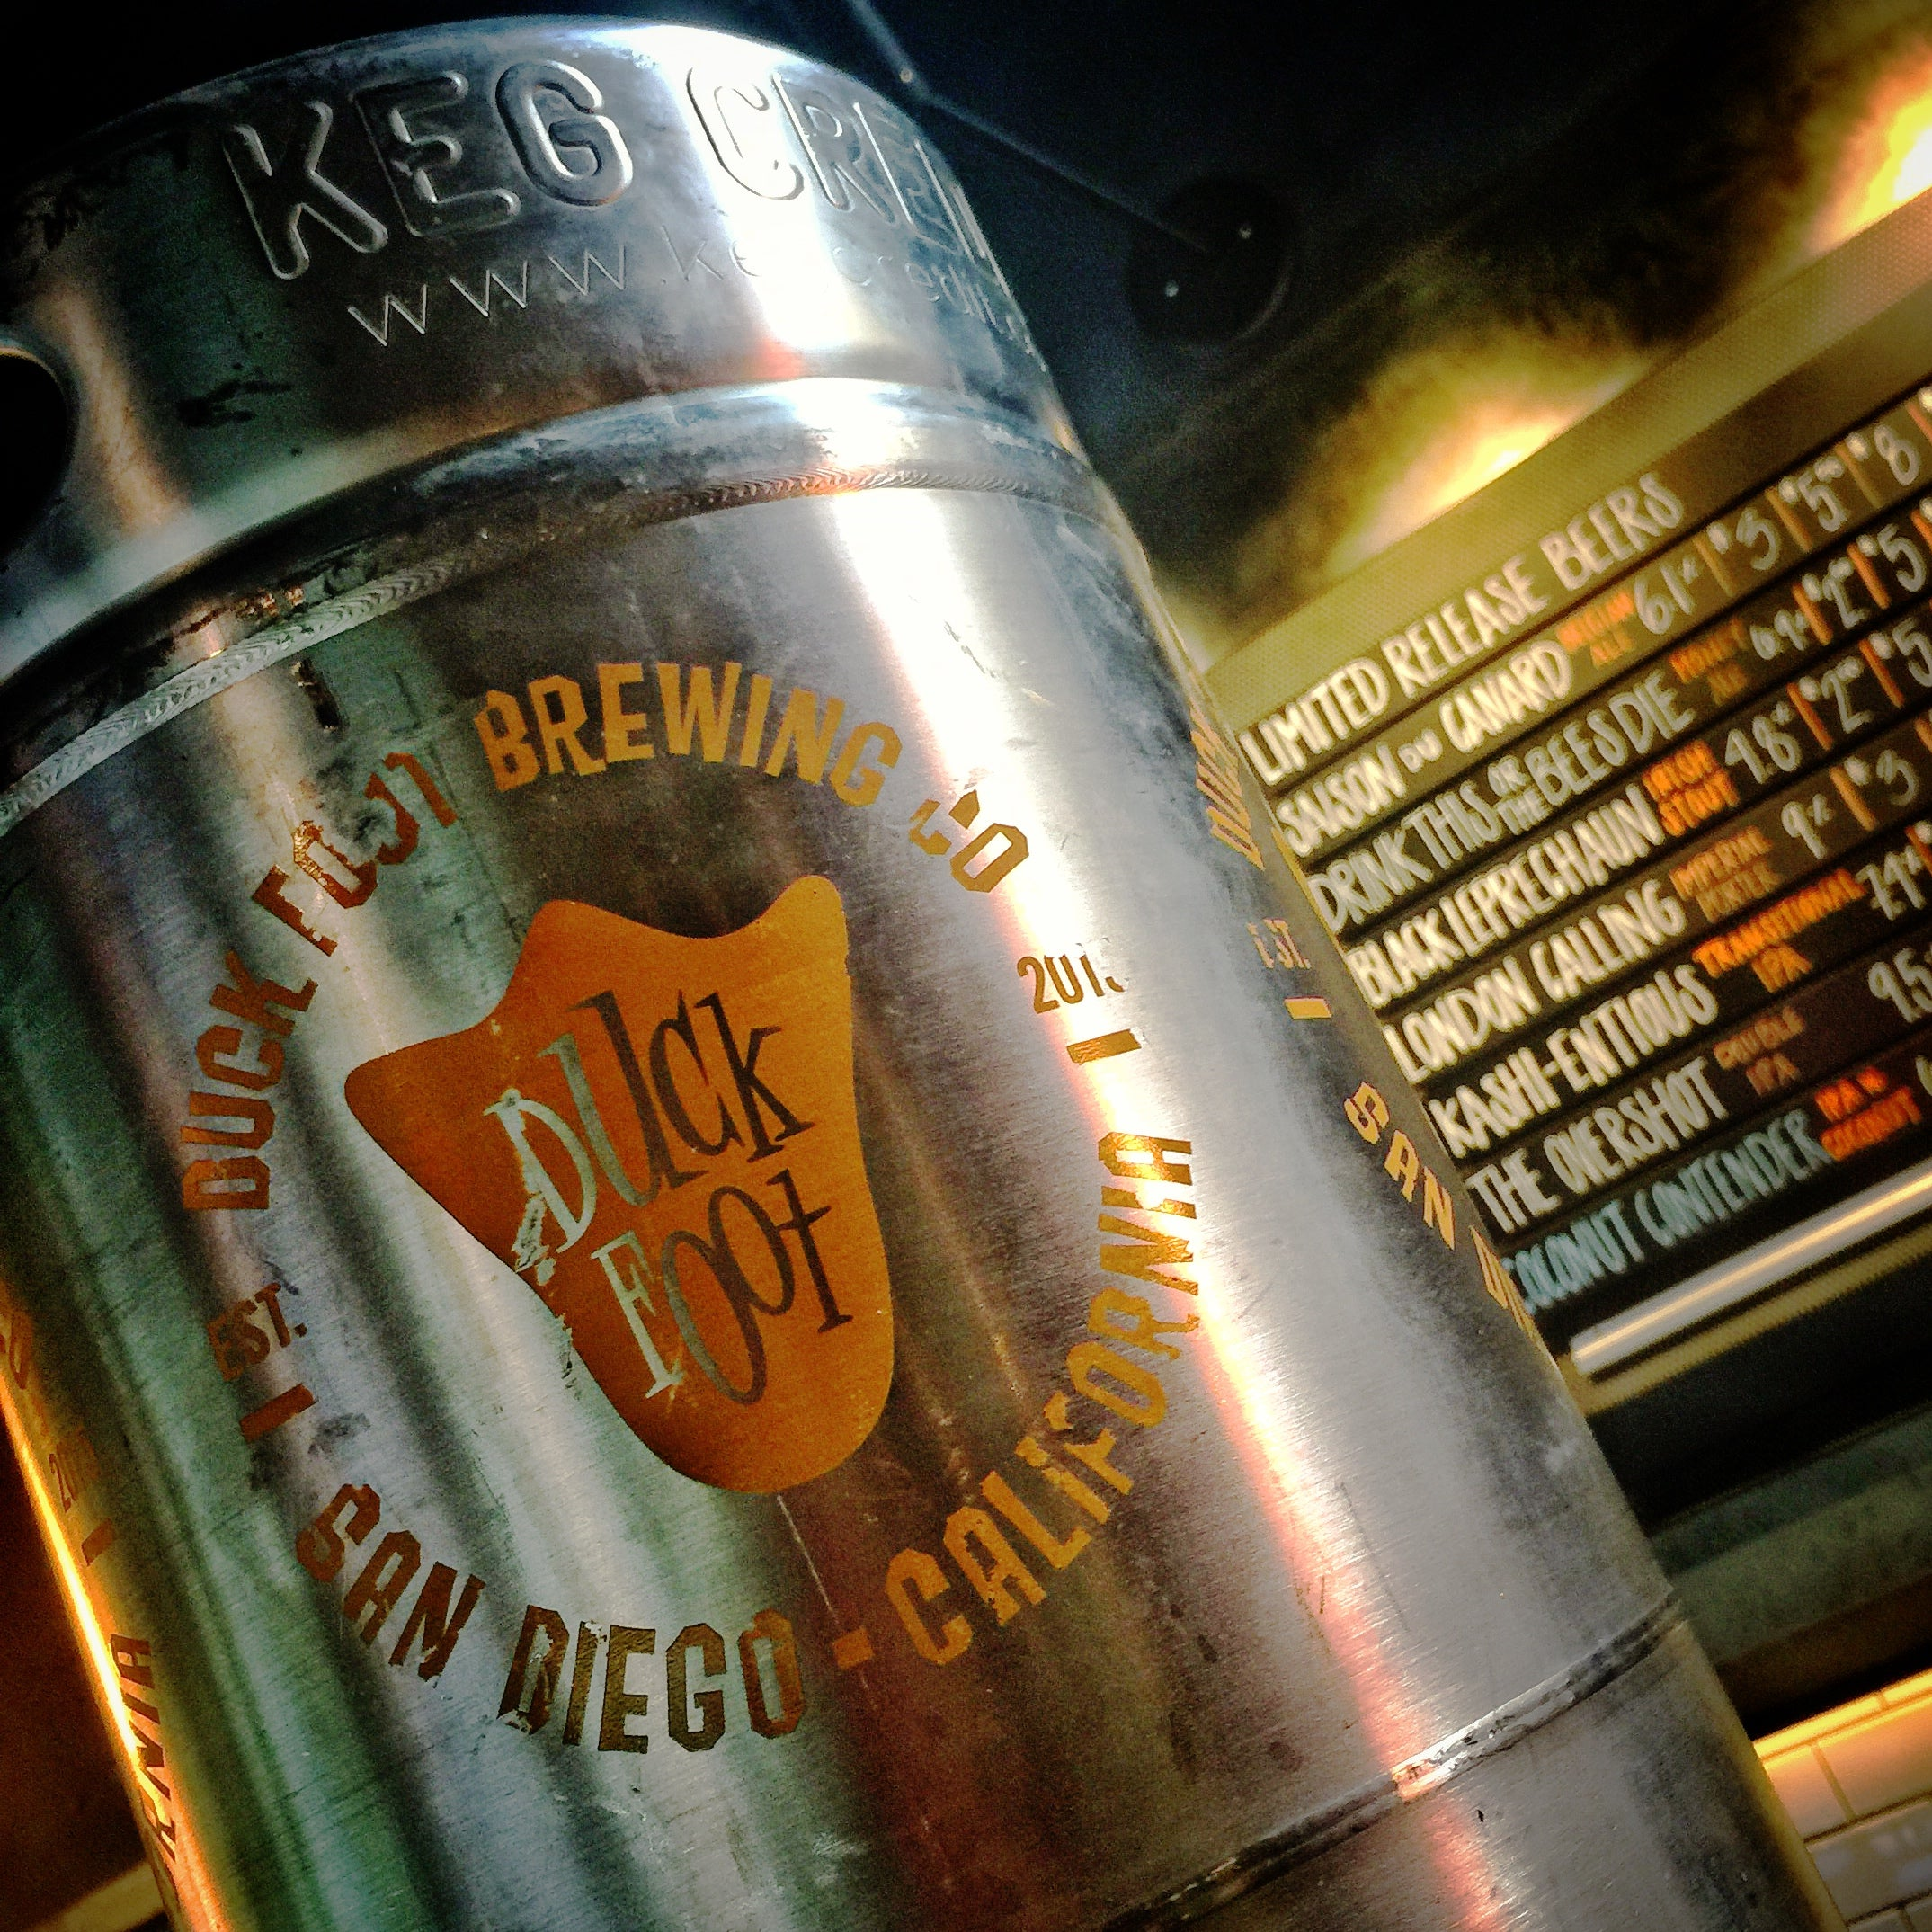 Drink This or the Bees Die, Honey Ale, Keg (5 gal) - CALL 858-433-7916 TO RESERVE